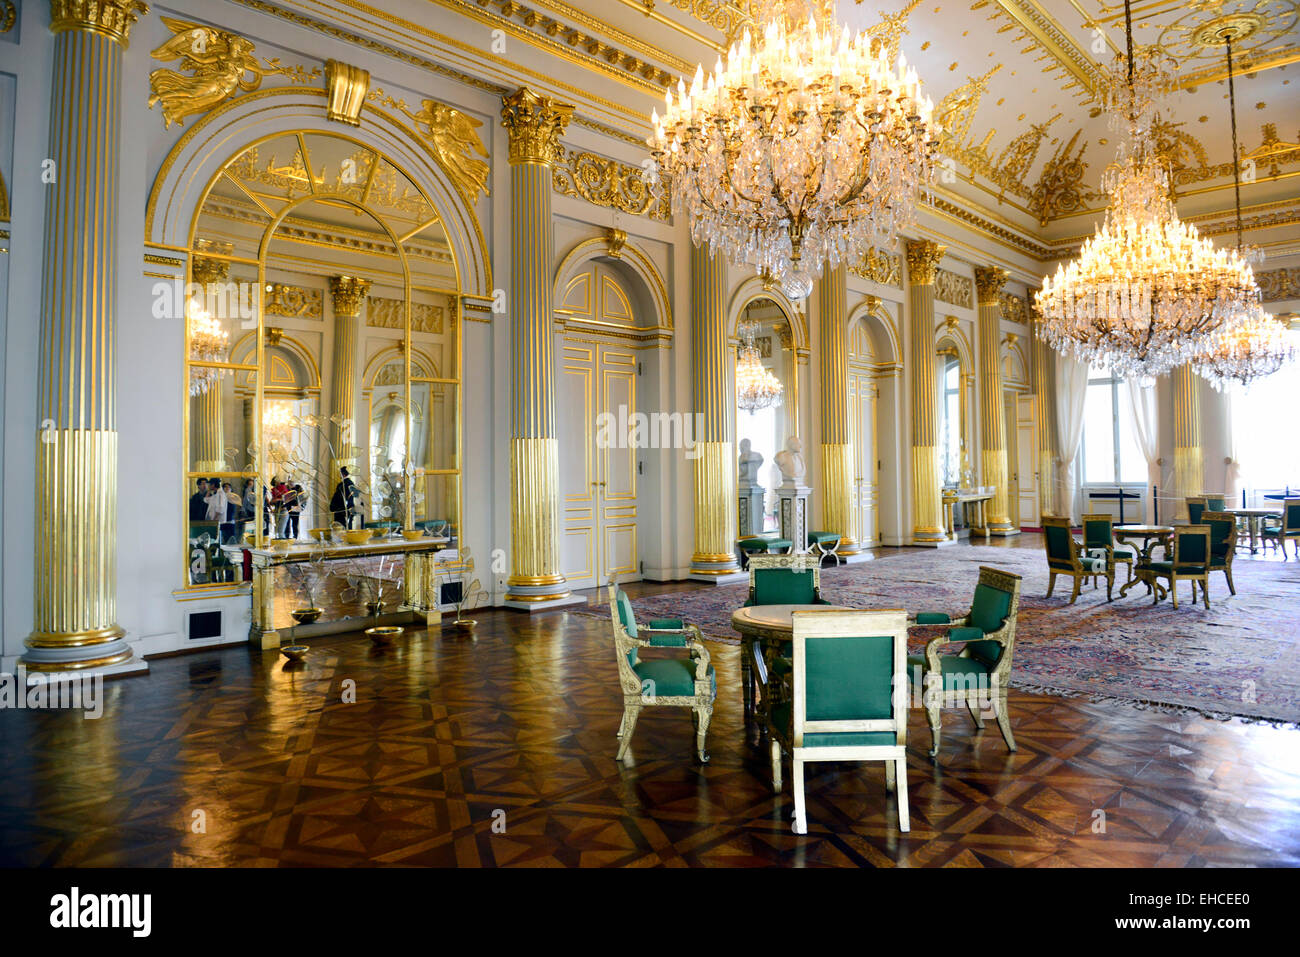 The Beautiful Interior Halls And Rooms Of The Royal Palace